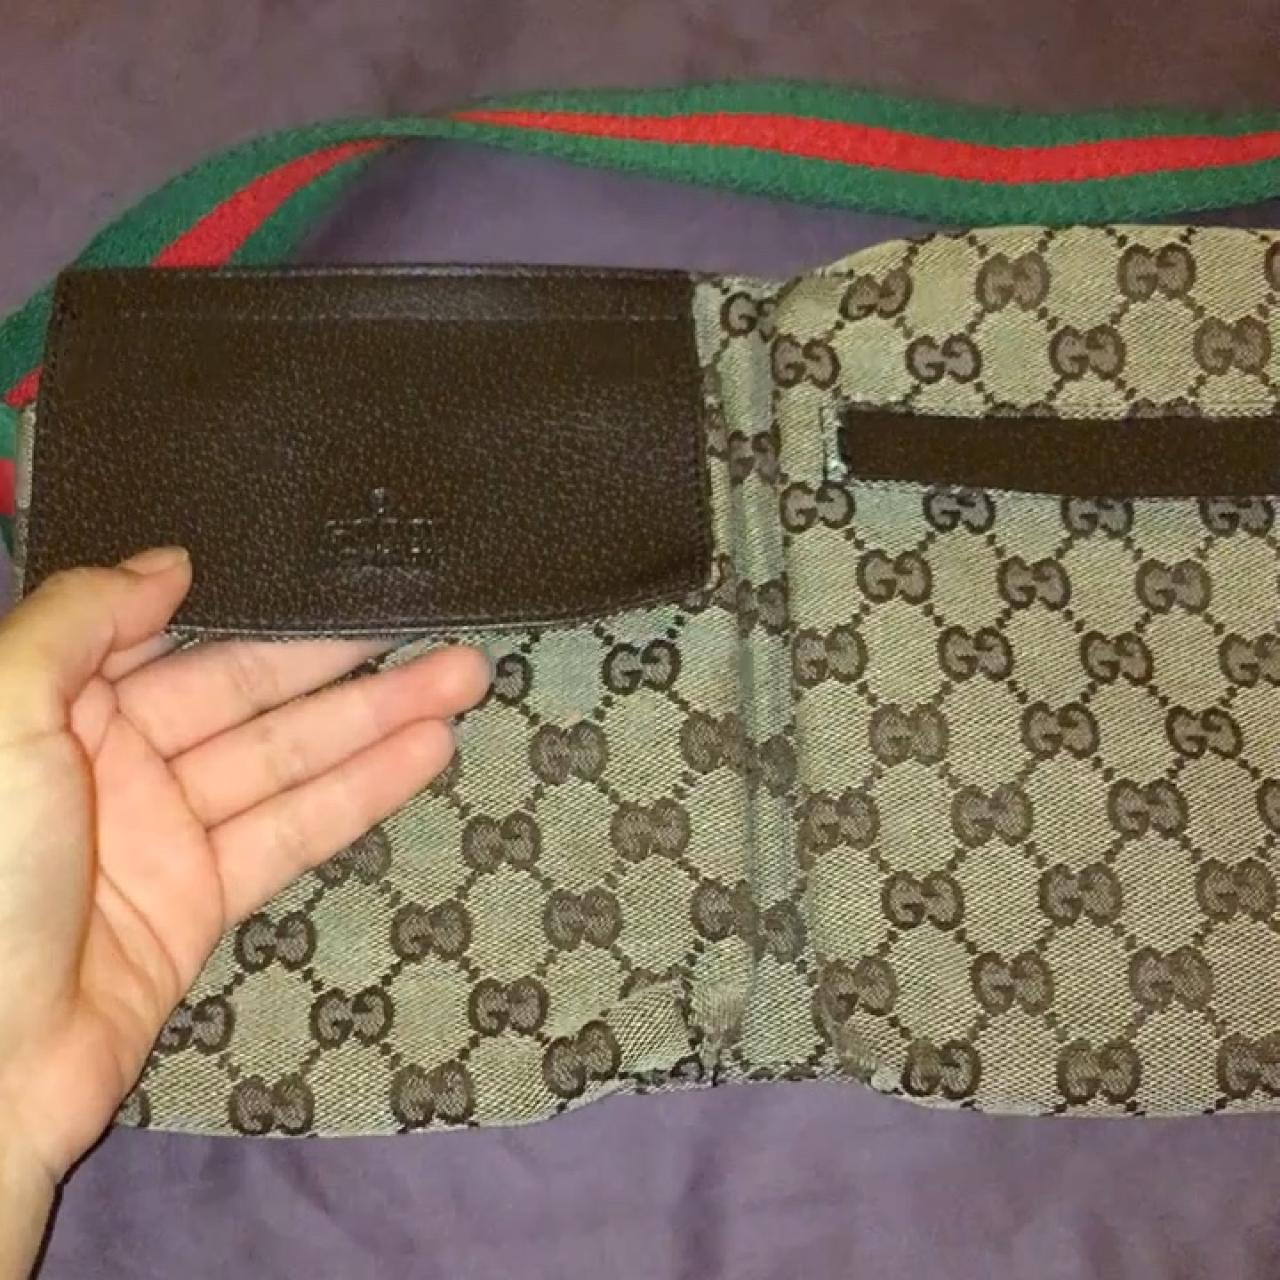 d61972bc35a5 @ap2naye. 9 months ago. Antioch, United States. Gucci fanny pack/waist bag  , slightly used in great condition